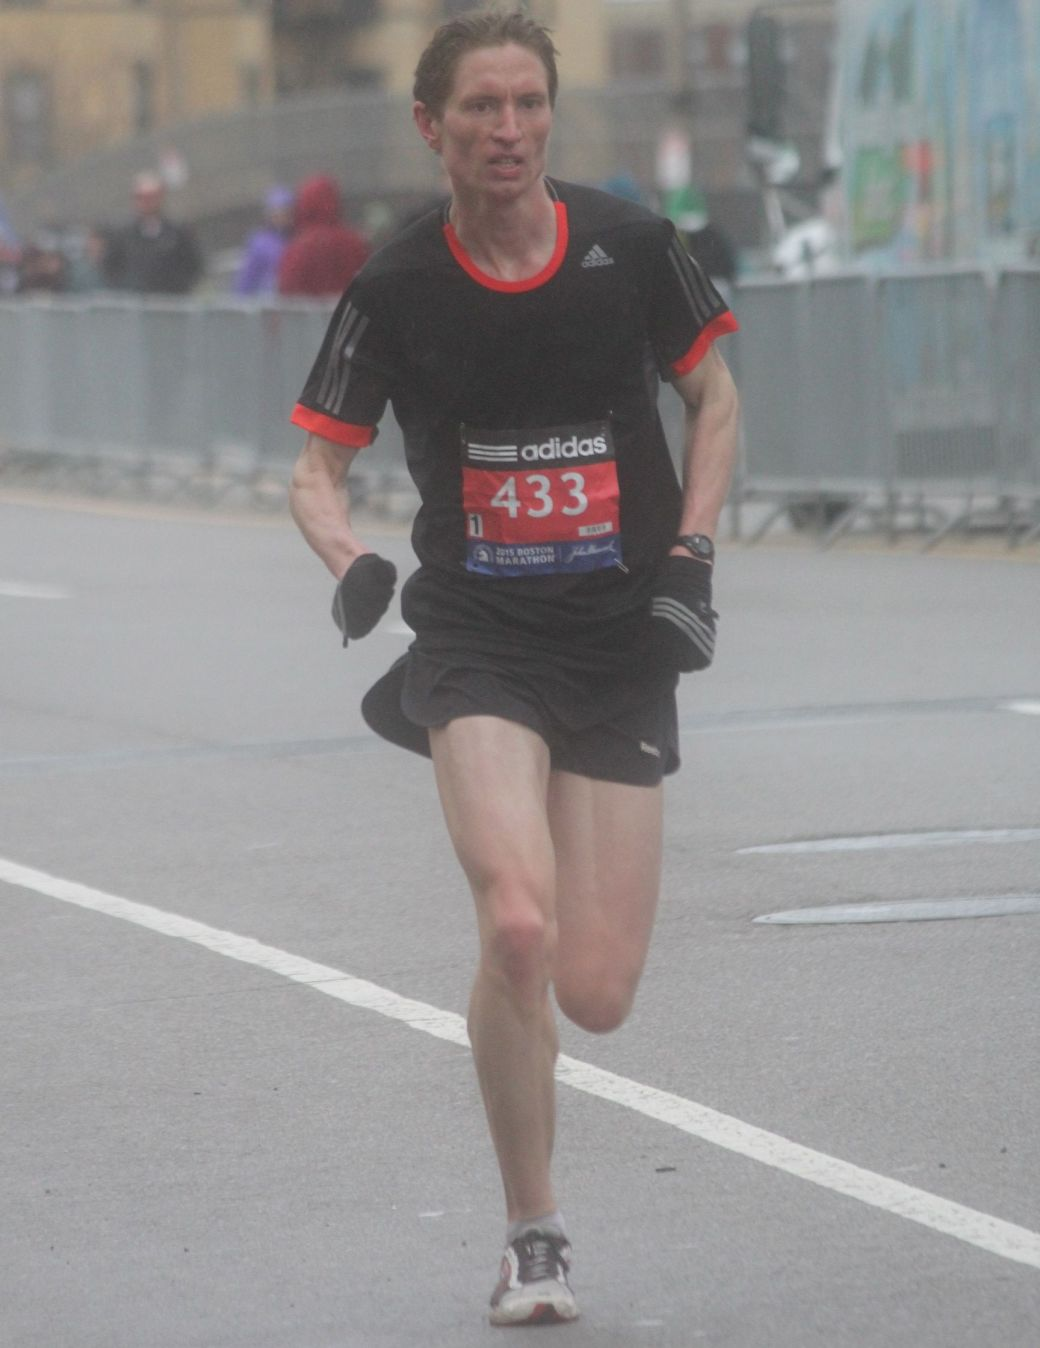 boston marathon april 20 2015 racer number 433